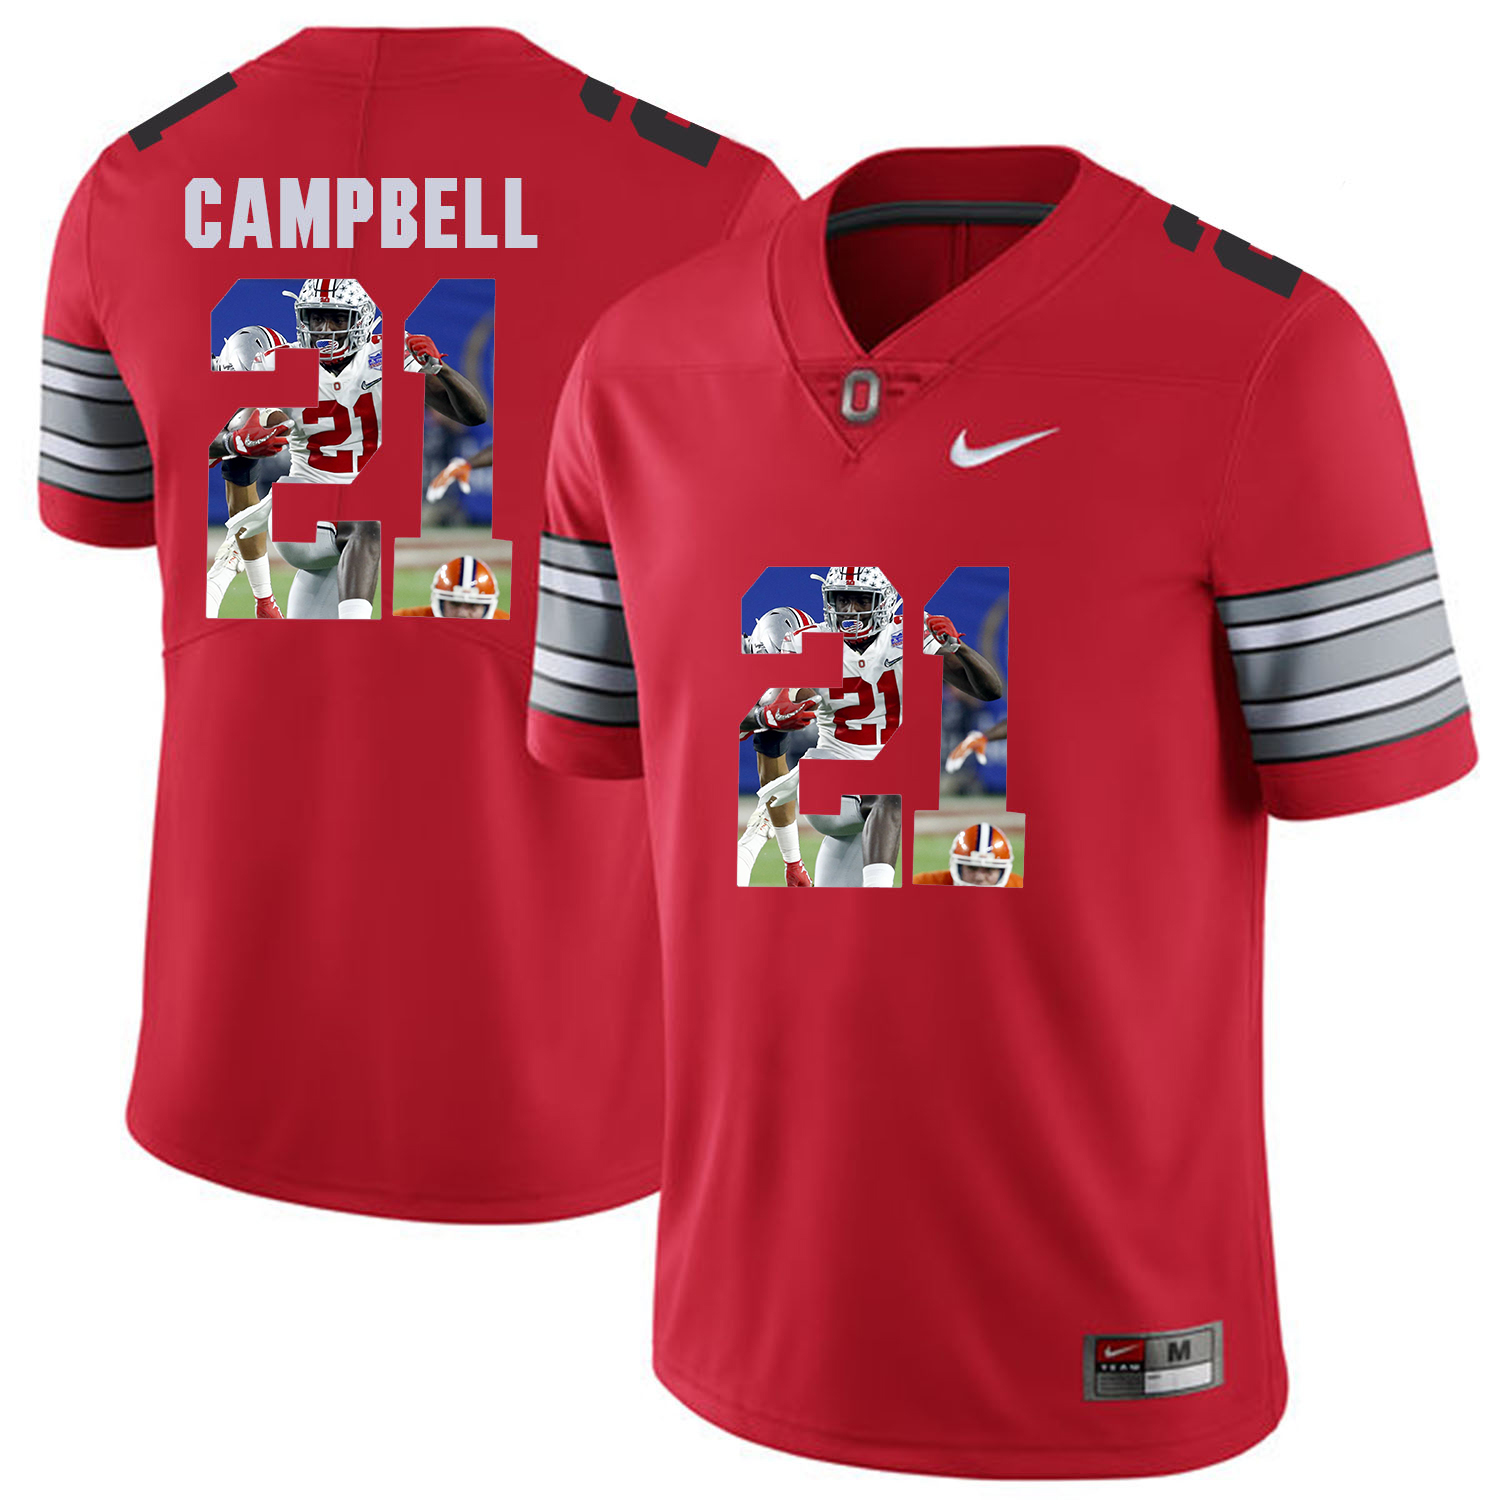 Men Ohio State 21 Gampbell Red Fashion Edition Customized NCAA Jerseys